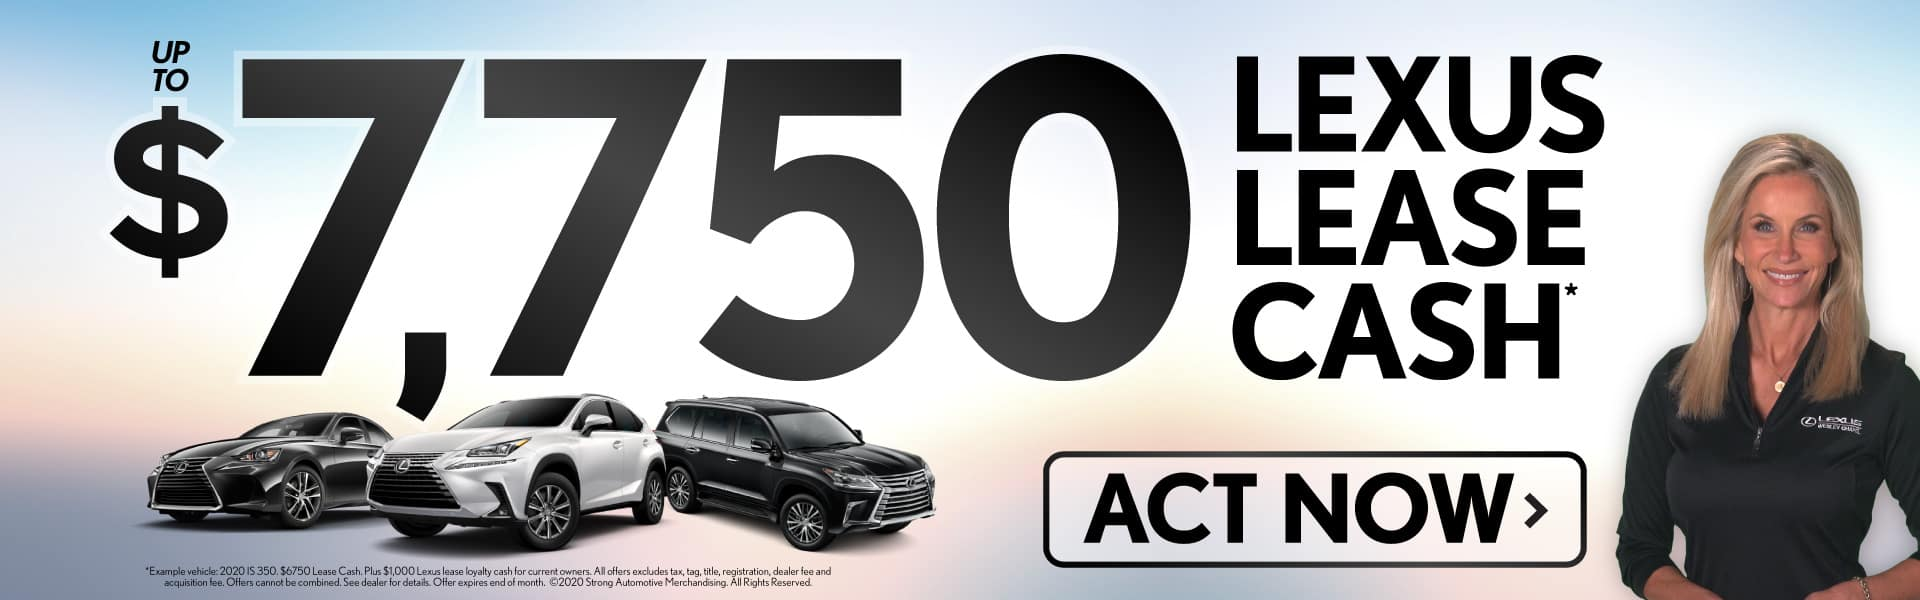 Get up to $7,750 Lexus Lease Cash - ACT NOW